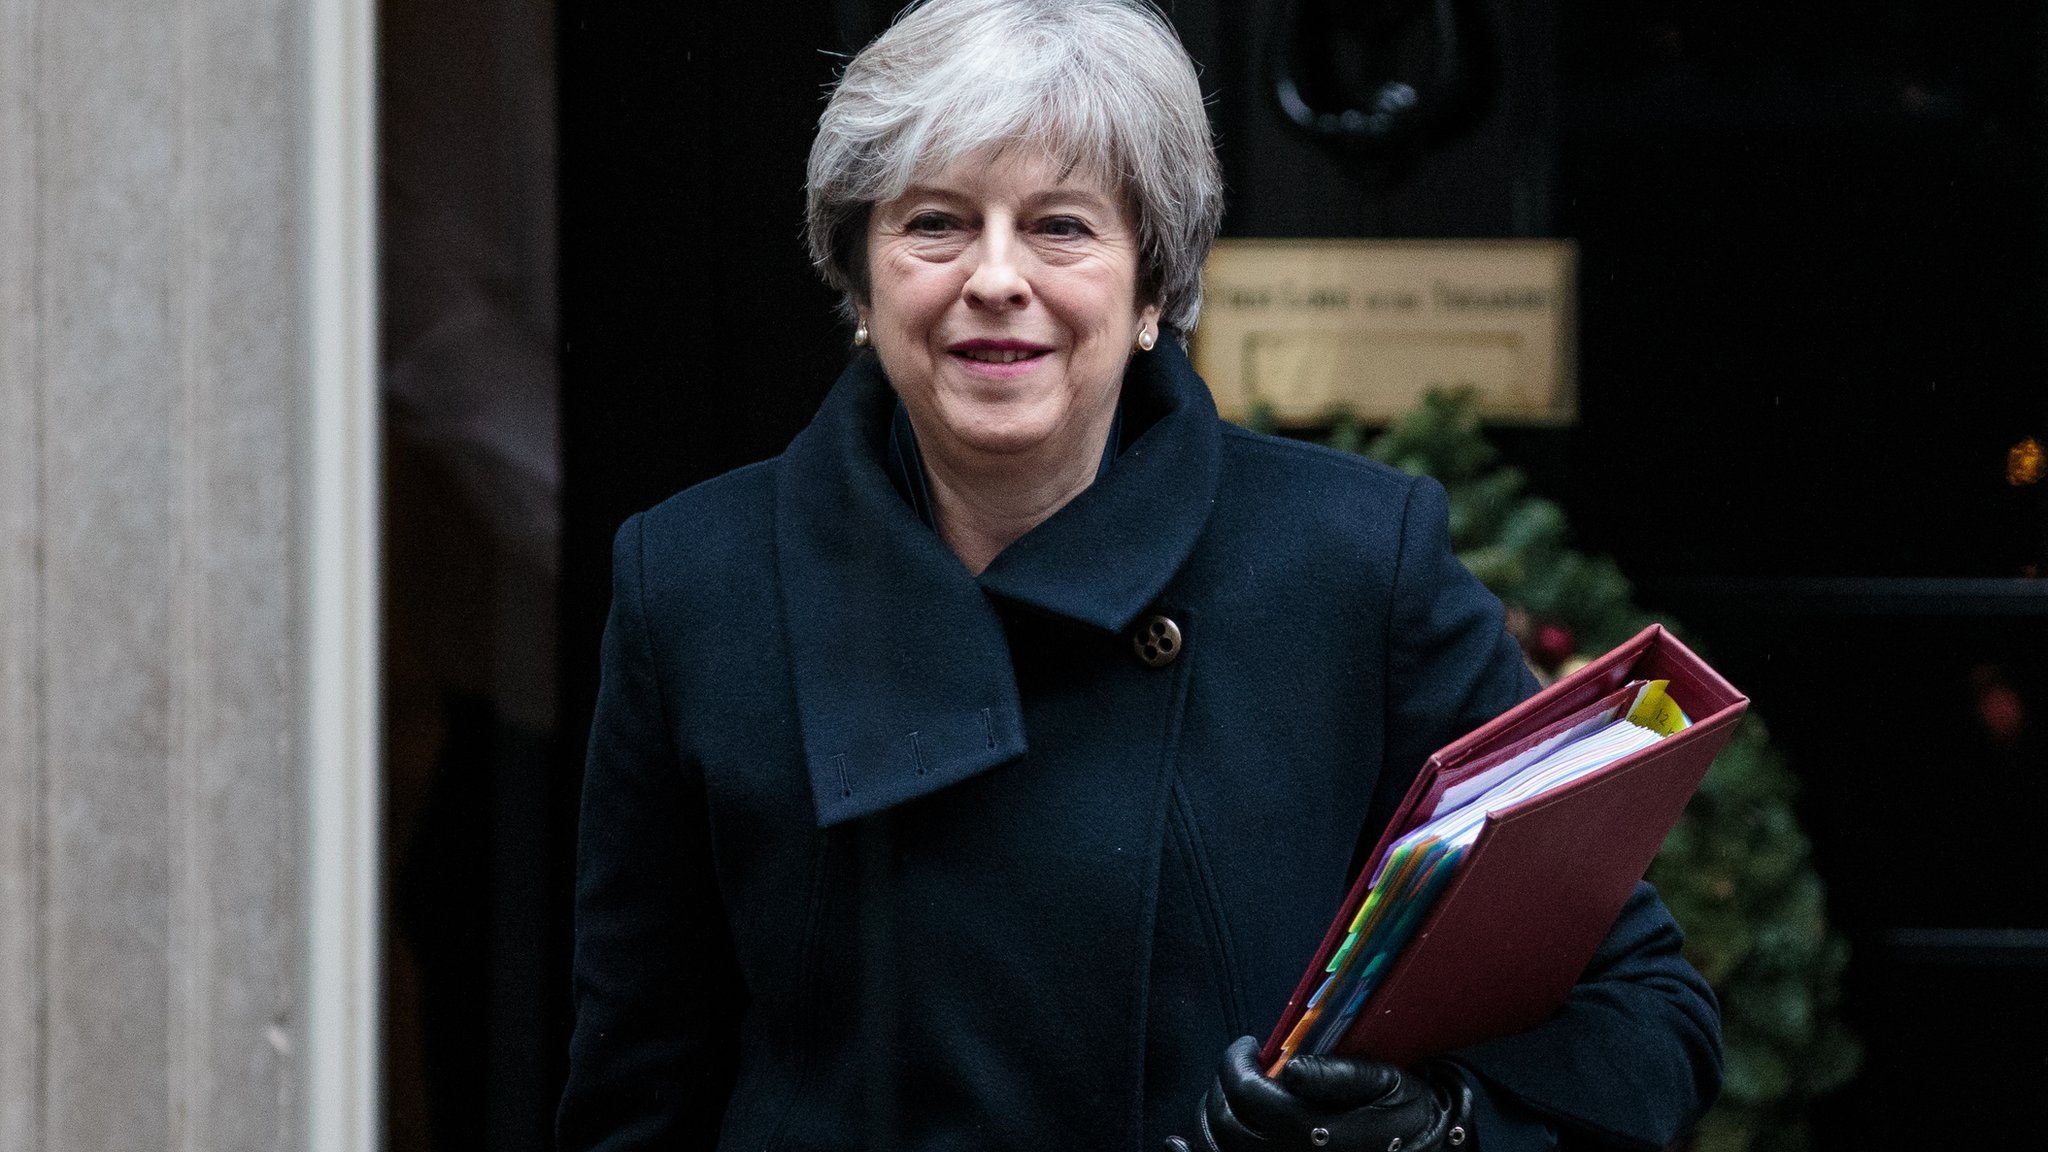 Brexit: Theresa May heads to Brussels after EU vote loss